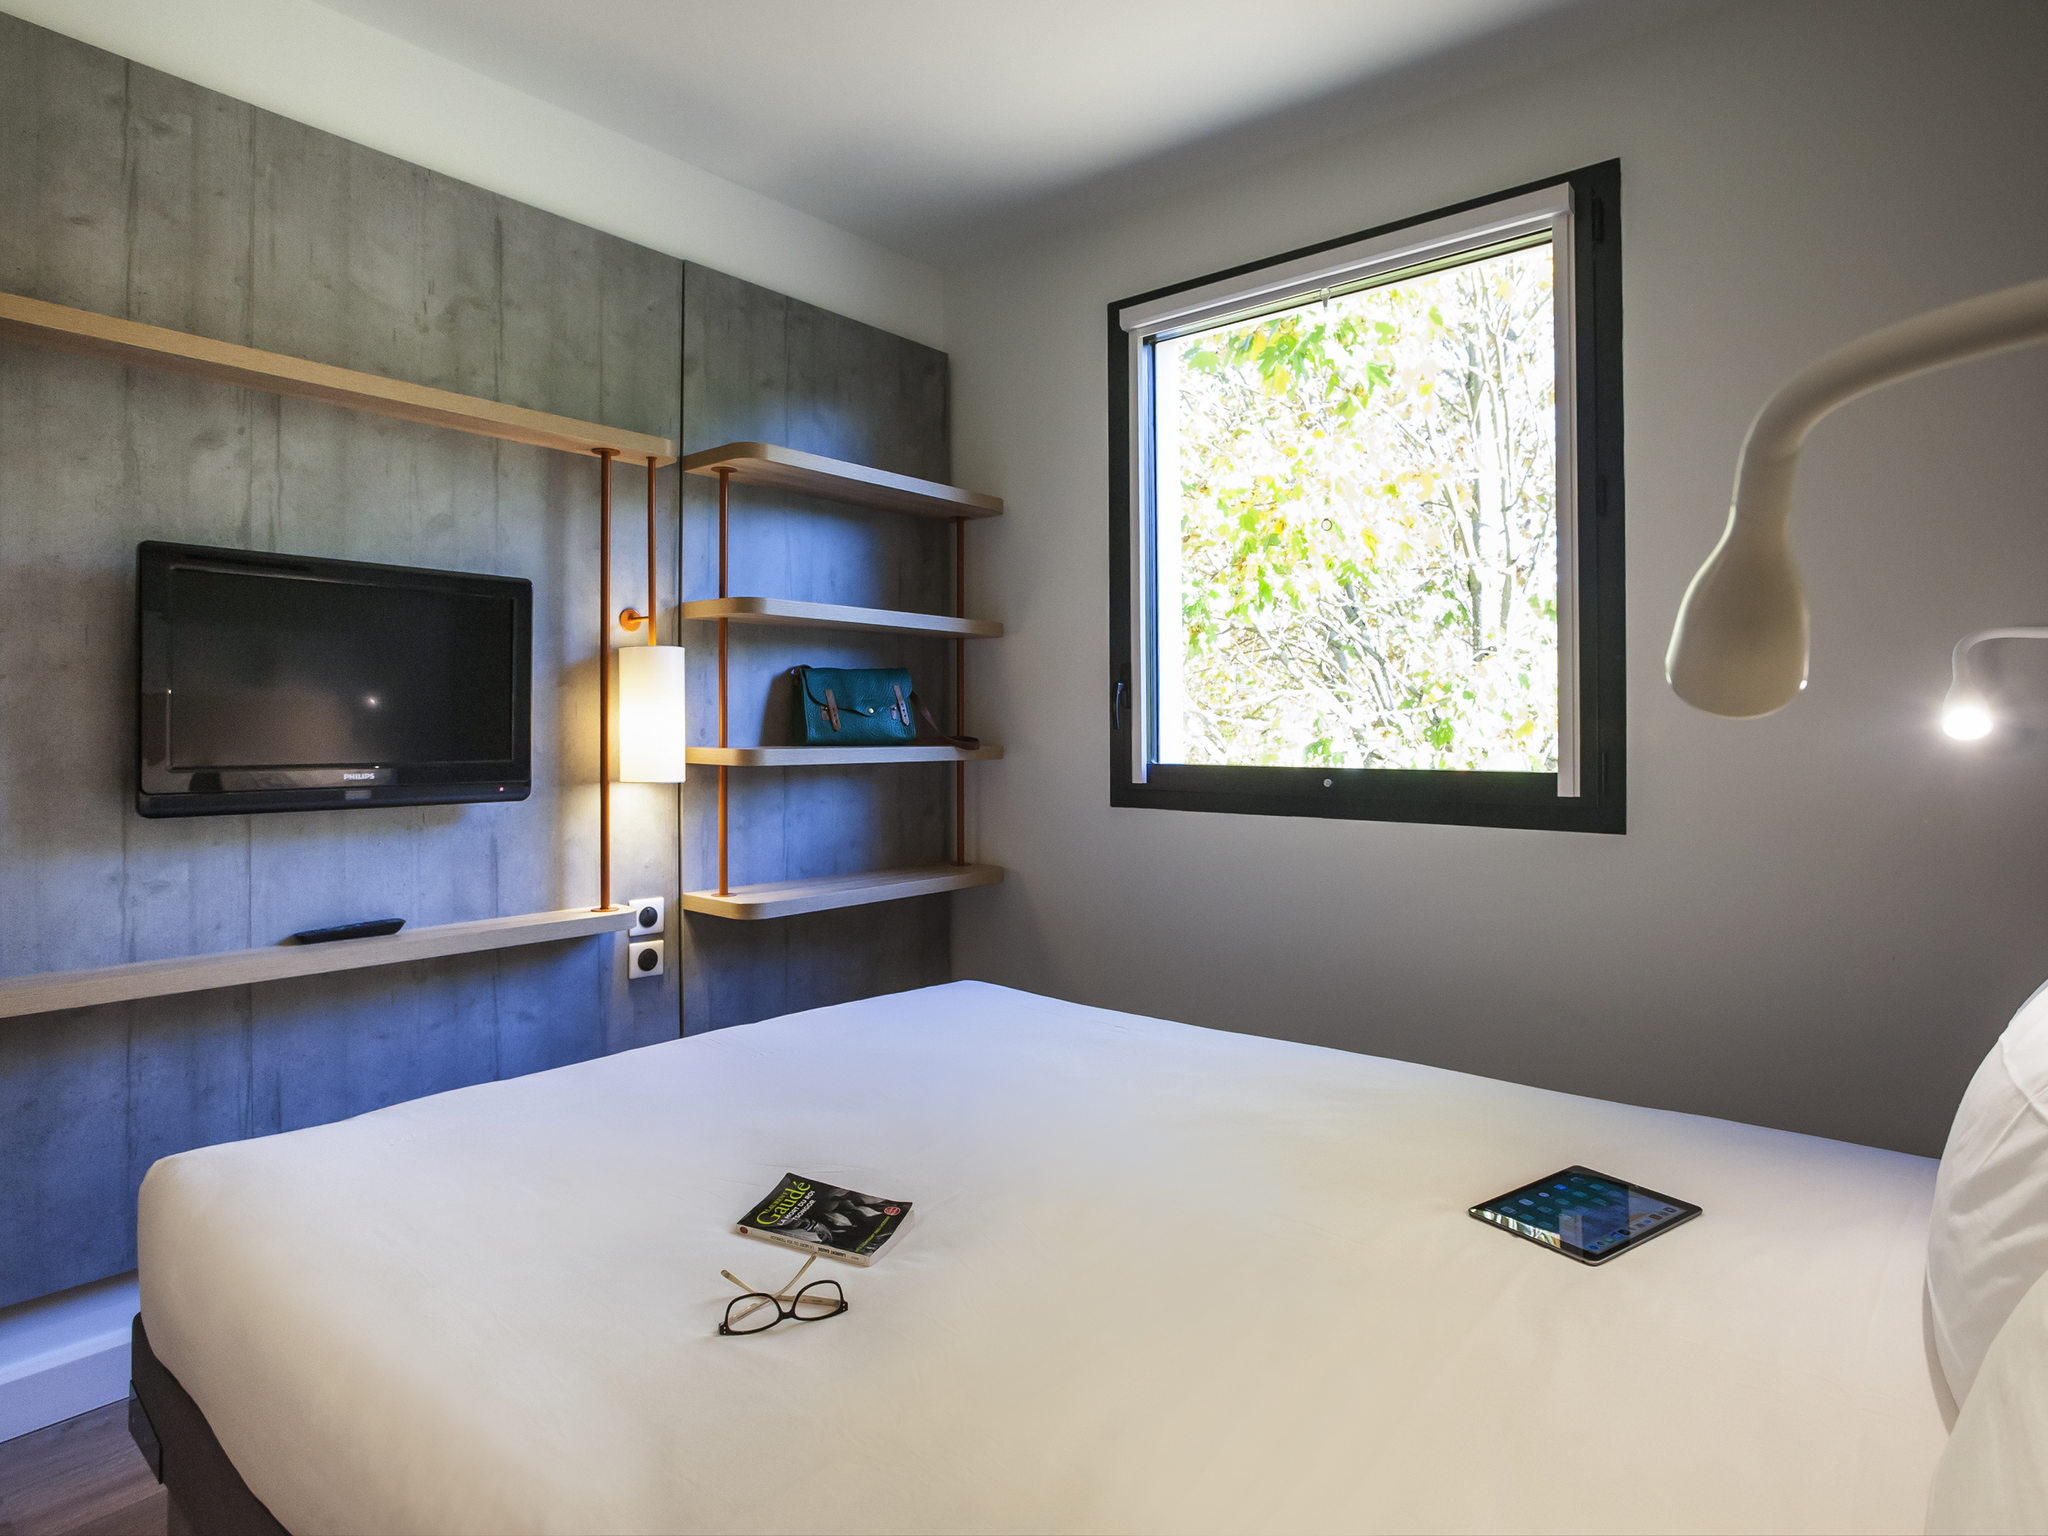 Hotel – ibis budget Château-Thierry (Opening June 2018)